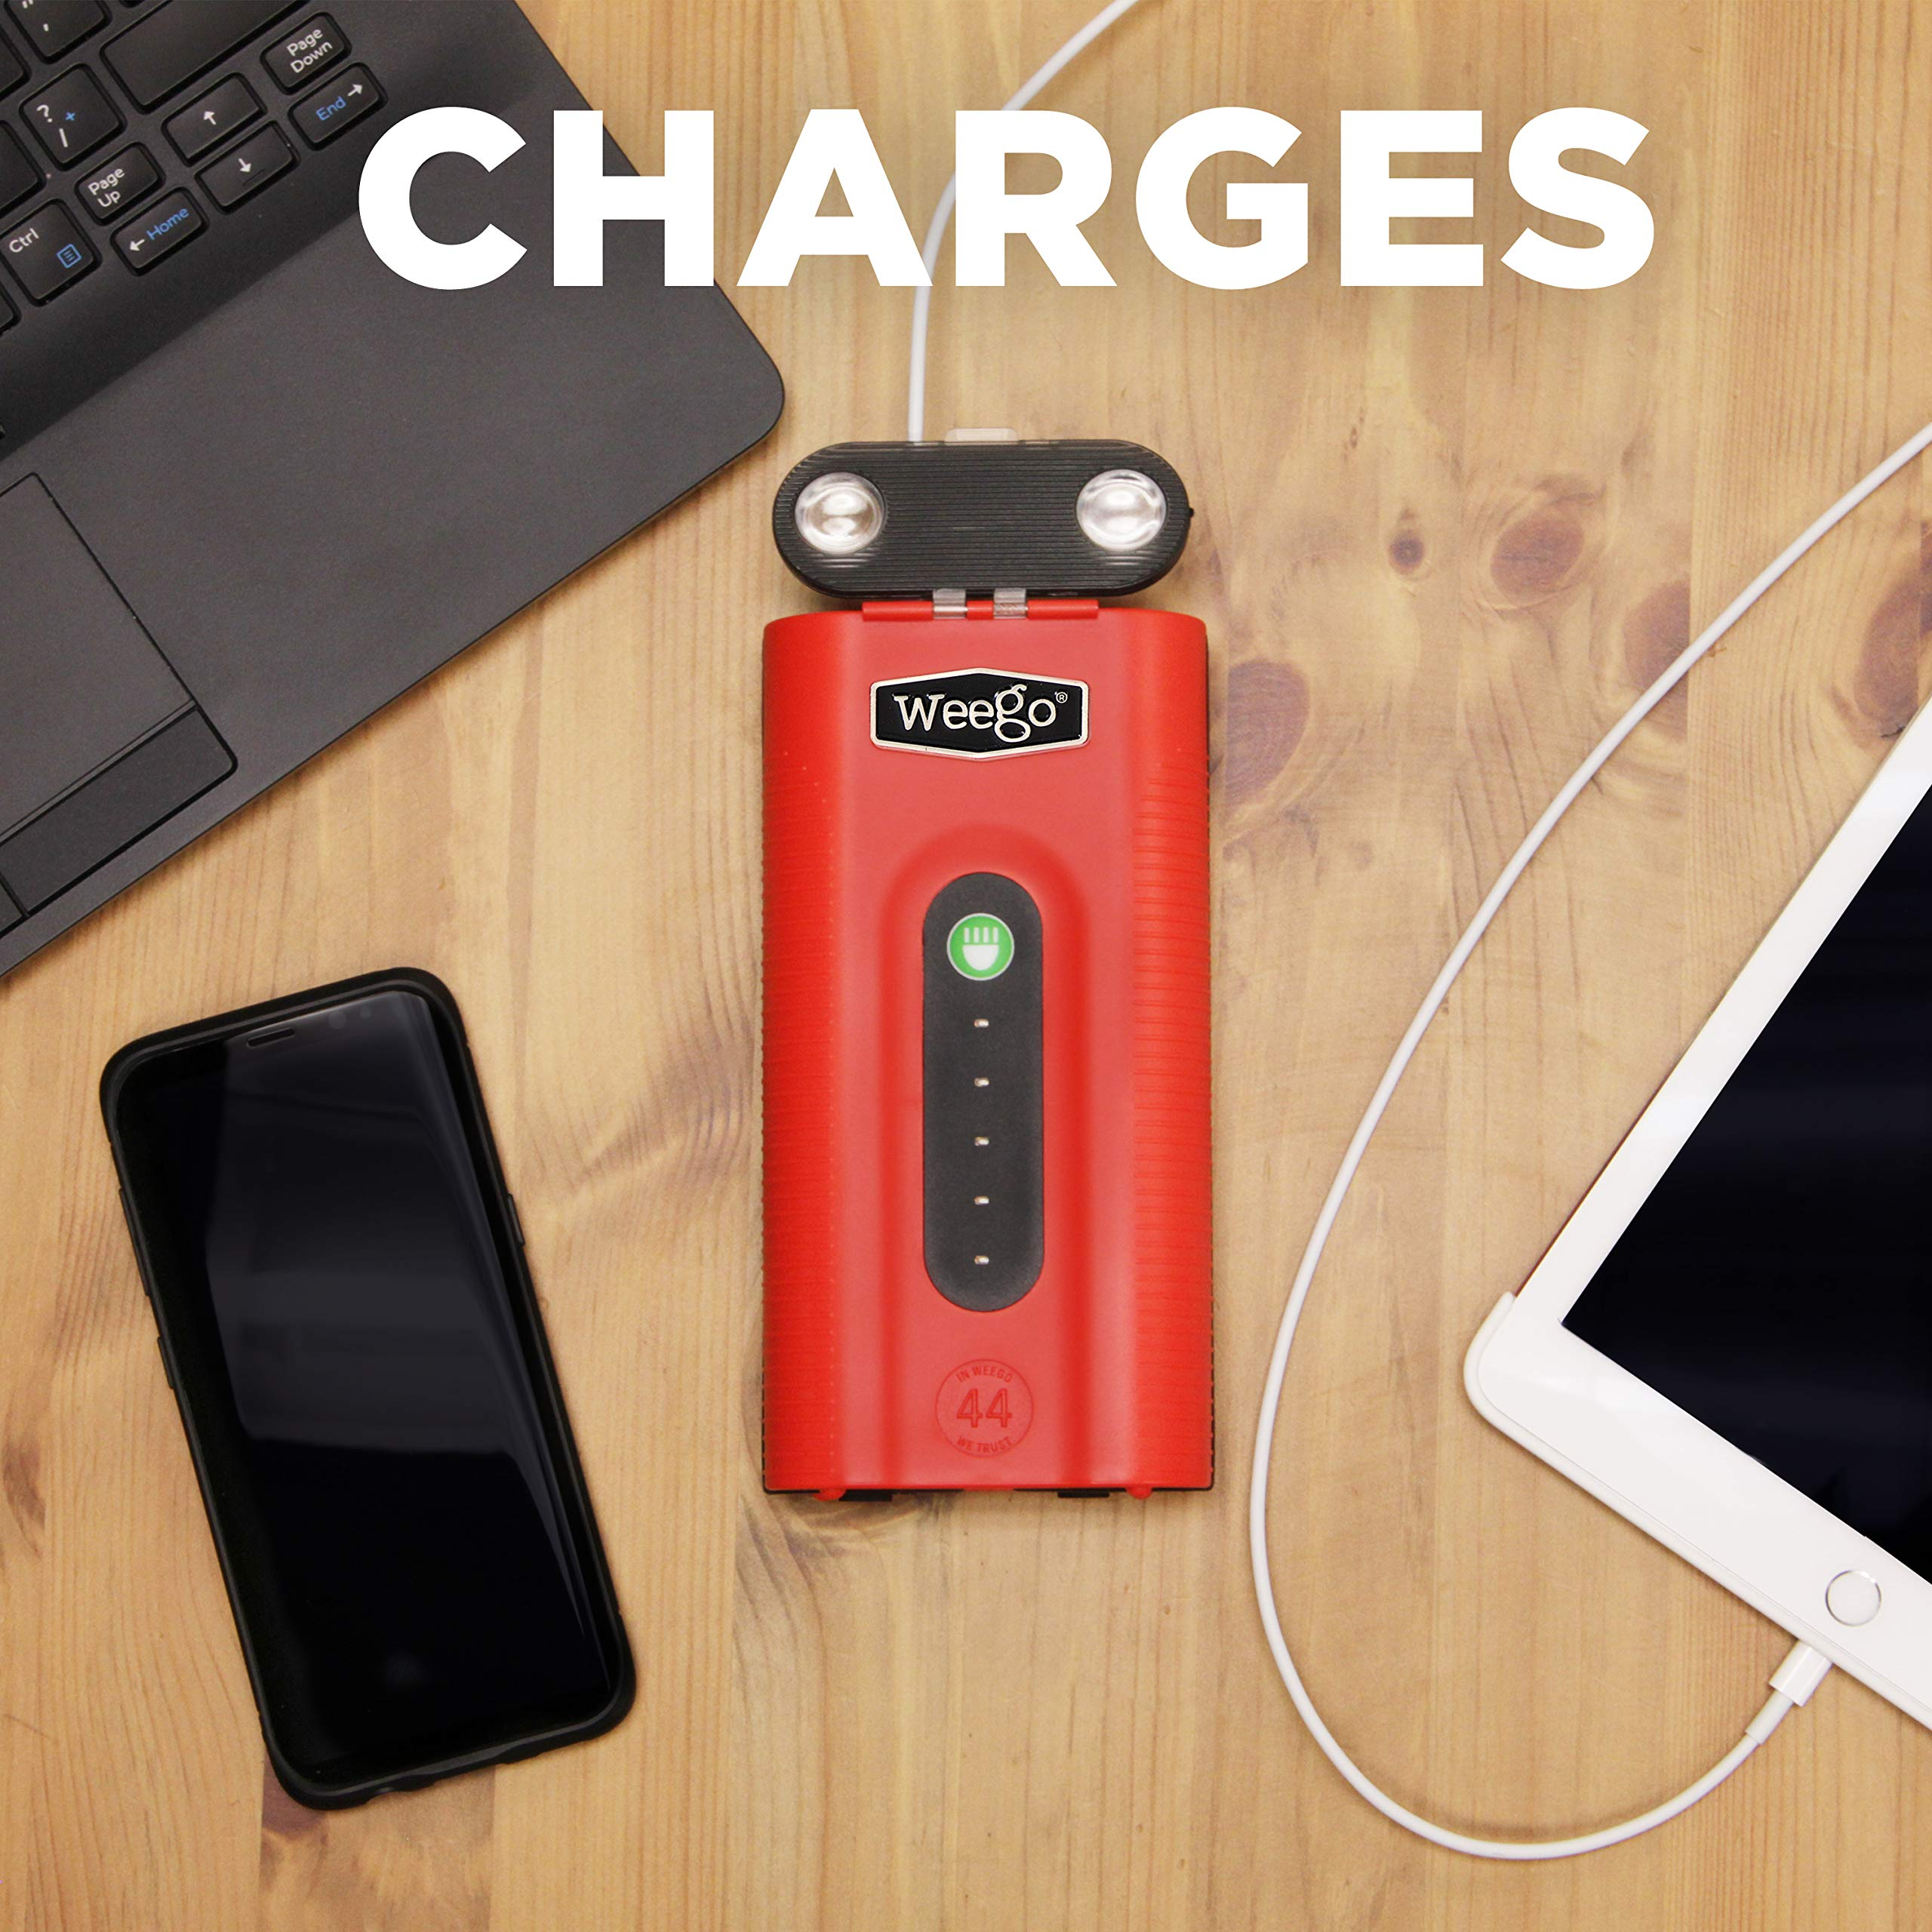 WEEGO 66.1 Jump Starting Power Pack (NEW 2019 Model) 2500 Peak 600 Cranking Amps High Performance Lithium Ion Jump Starter Quick Charges Phones 600 Lumen LED Flashlight Water Resistant by Weego (Image #3)